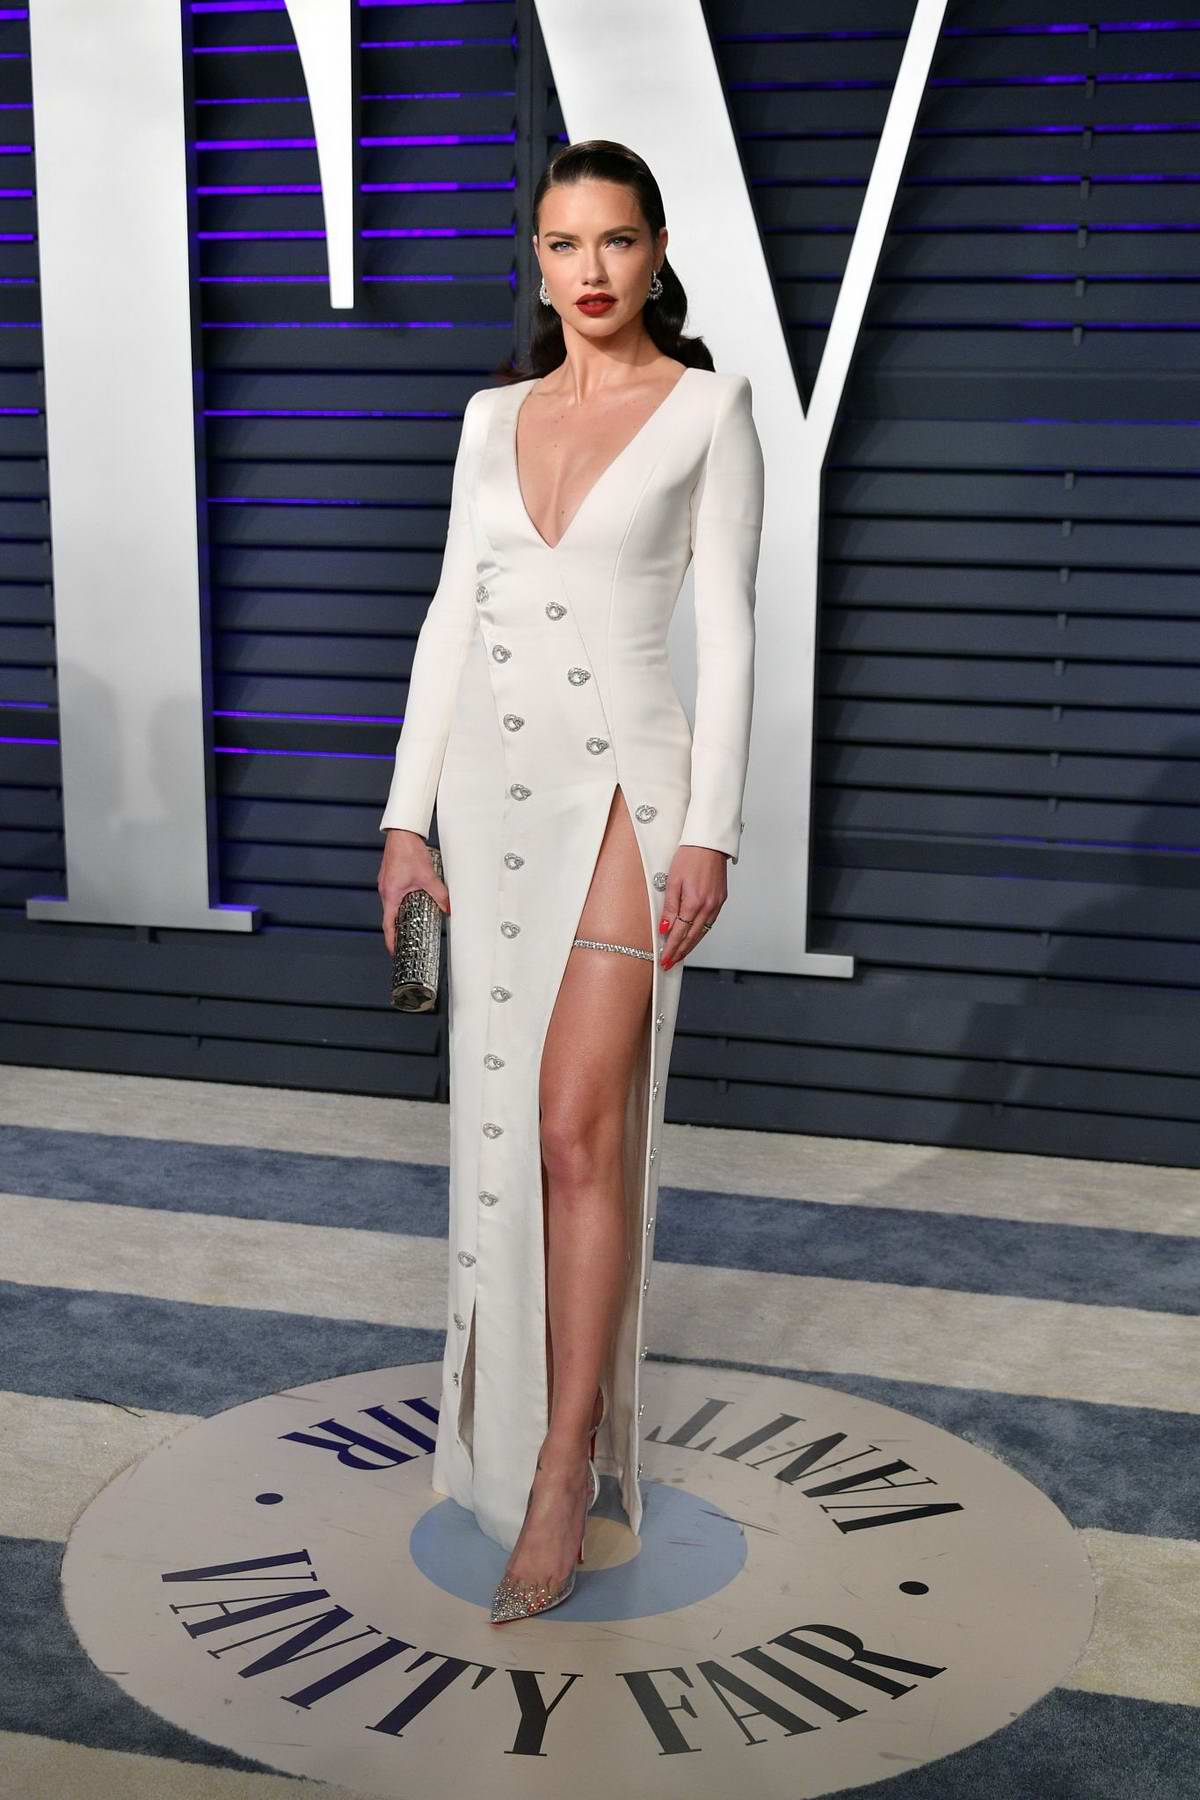 Adriana Lima attends the Vanity Fair Oscar Party at Wallis Annenberg Center for the Performing Arts in Beverly Hills, California